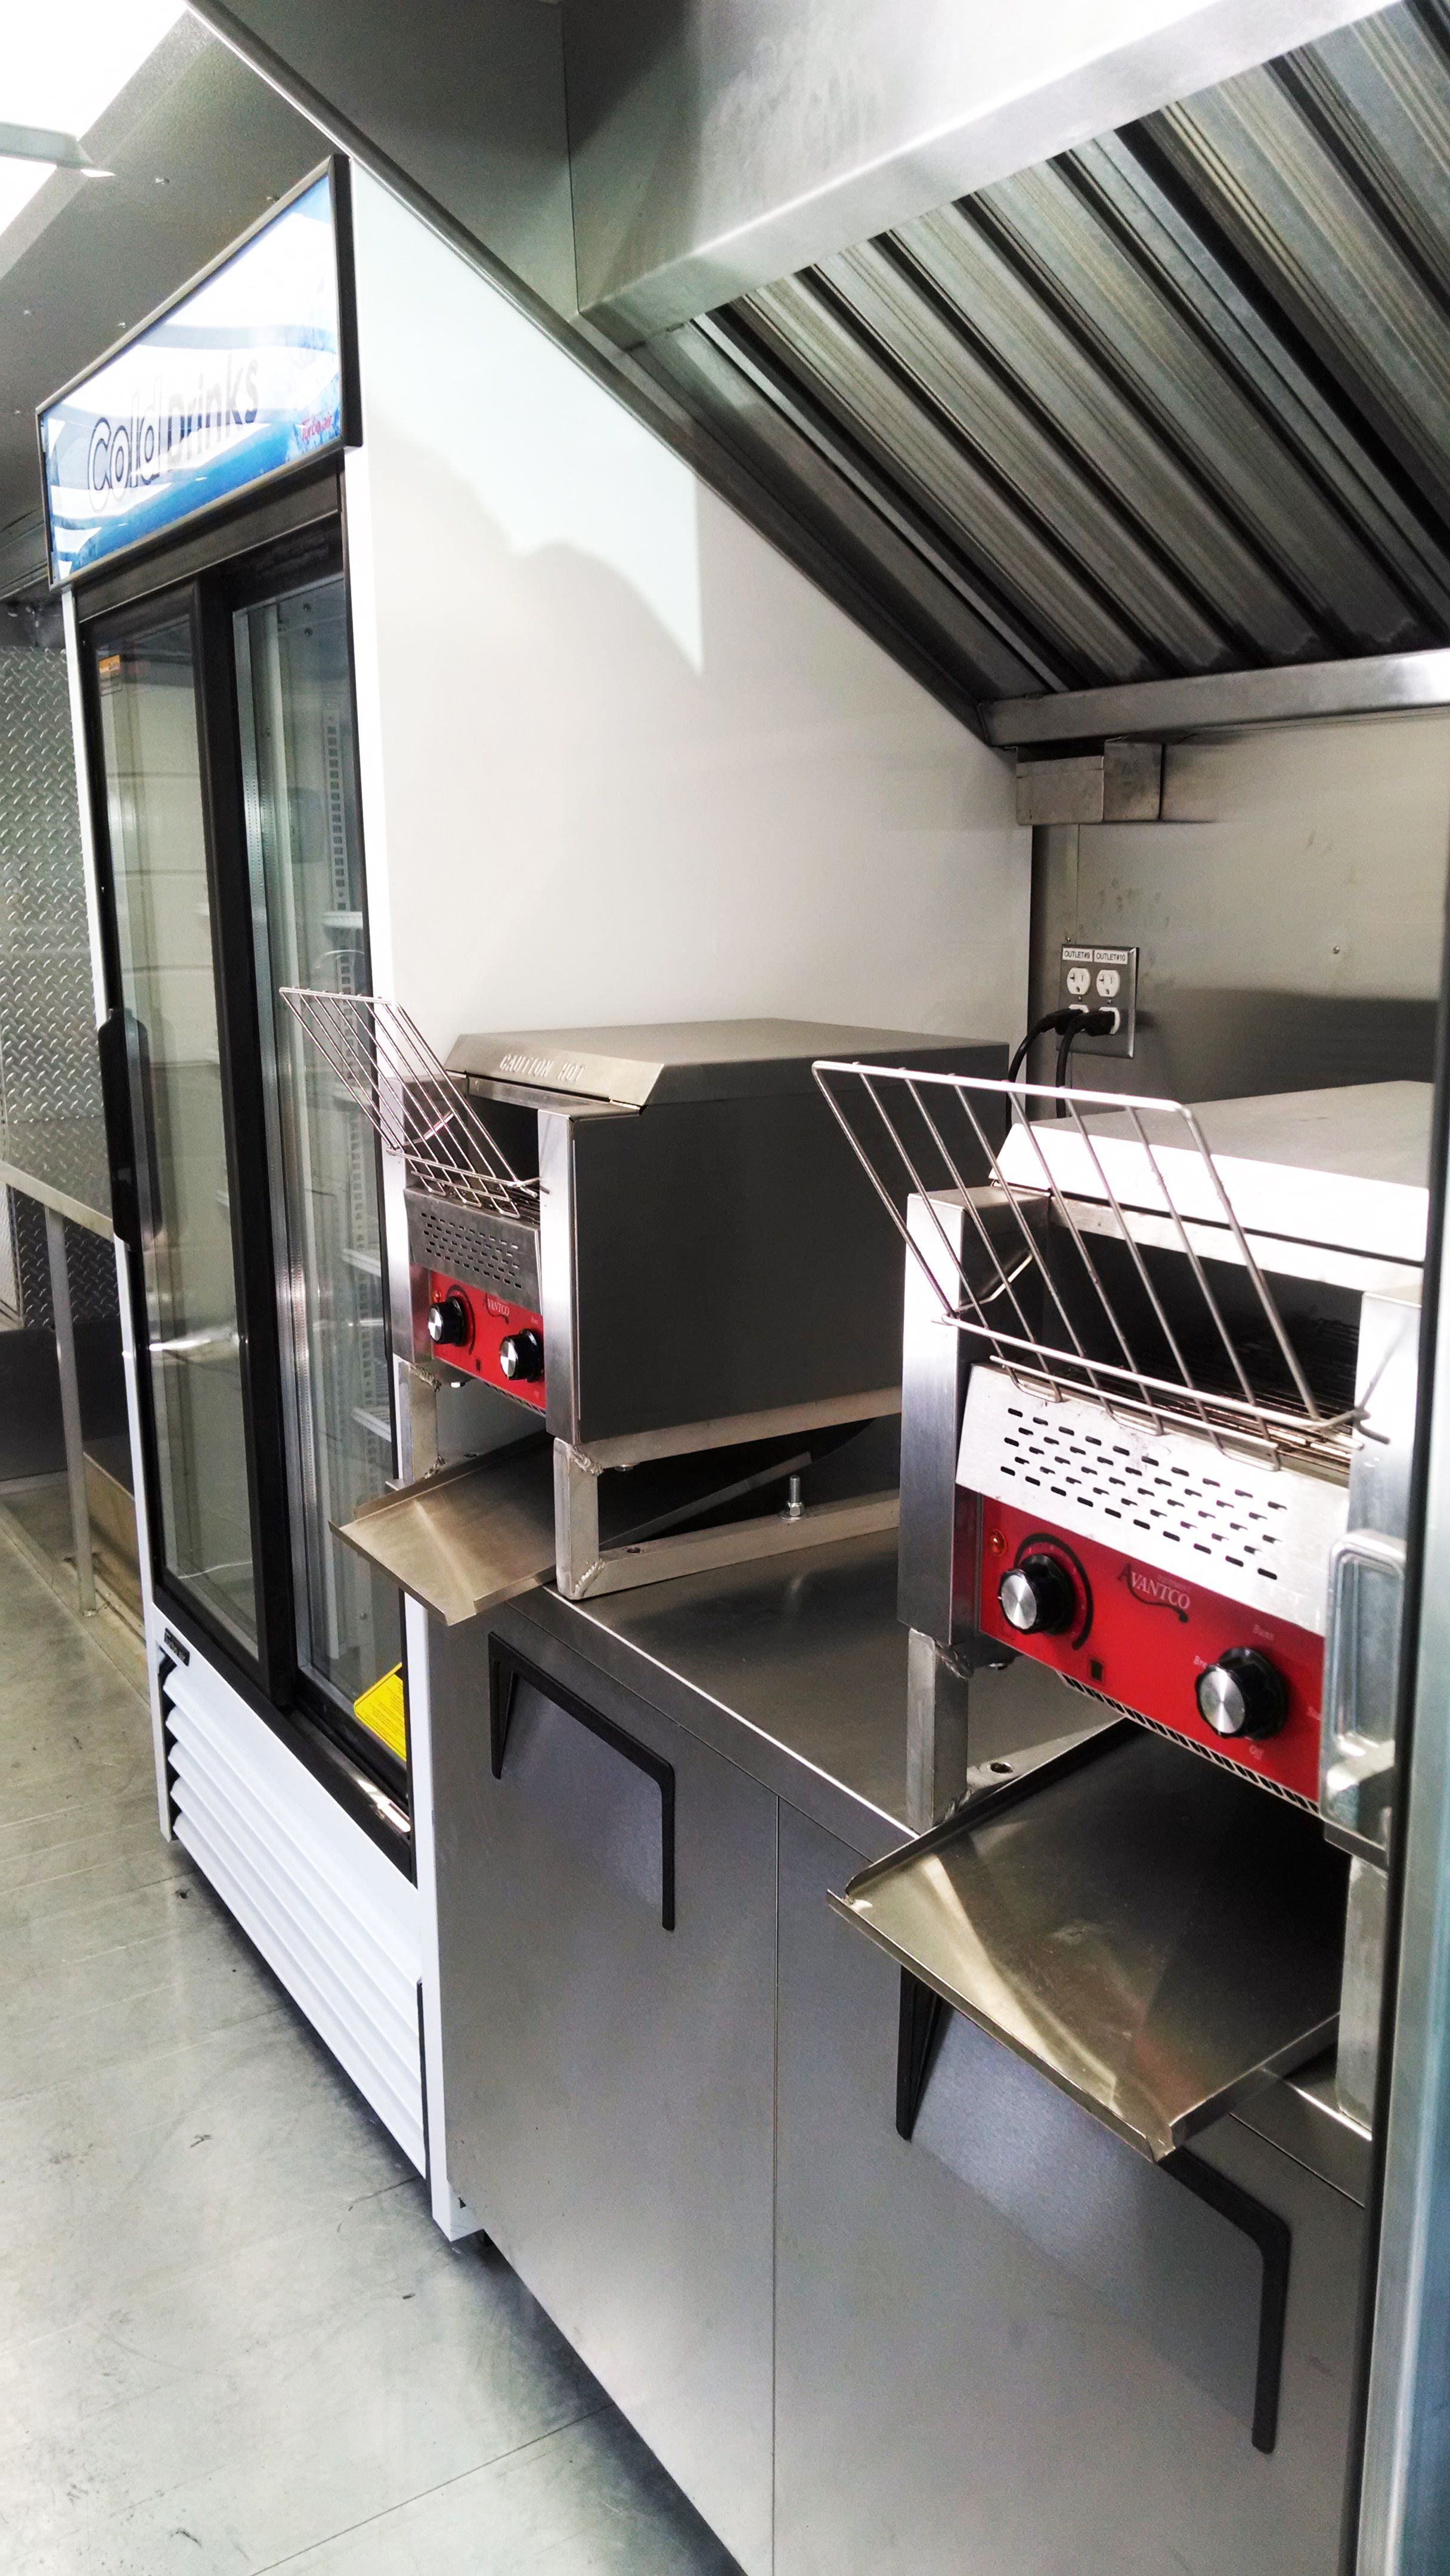 4 Ft Stainless Steel Hood Refrigerated Sandwich Prep Table Two Conveyor Toasters And A Merchandiser Refrigerator Custom Mobilekitchen Foodtrucks